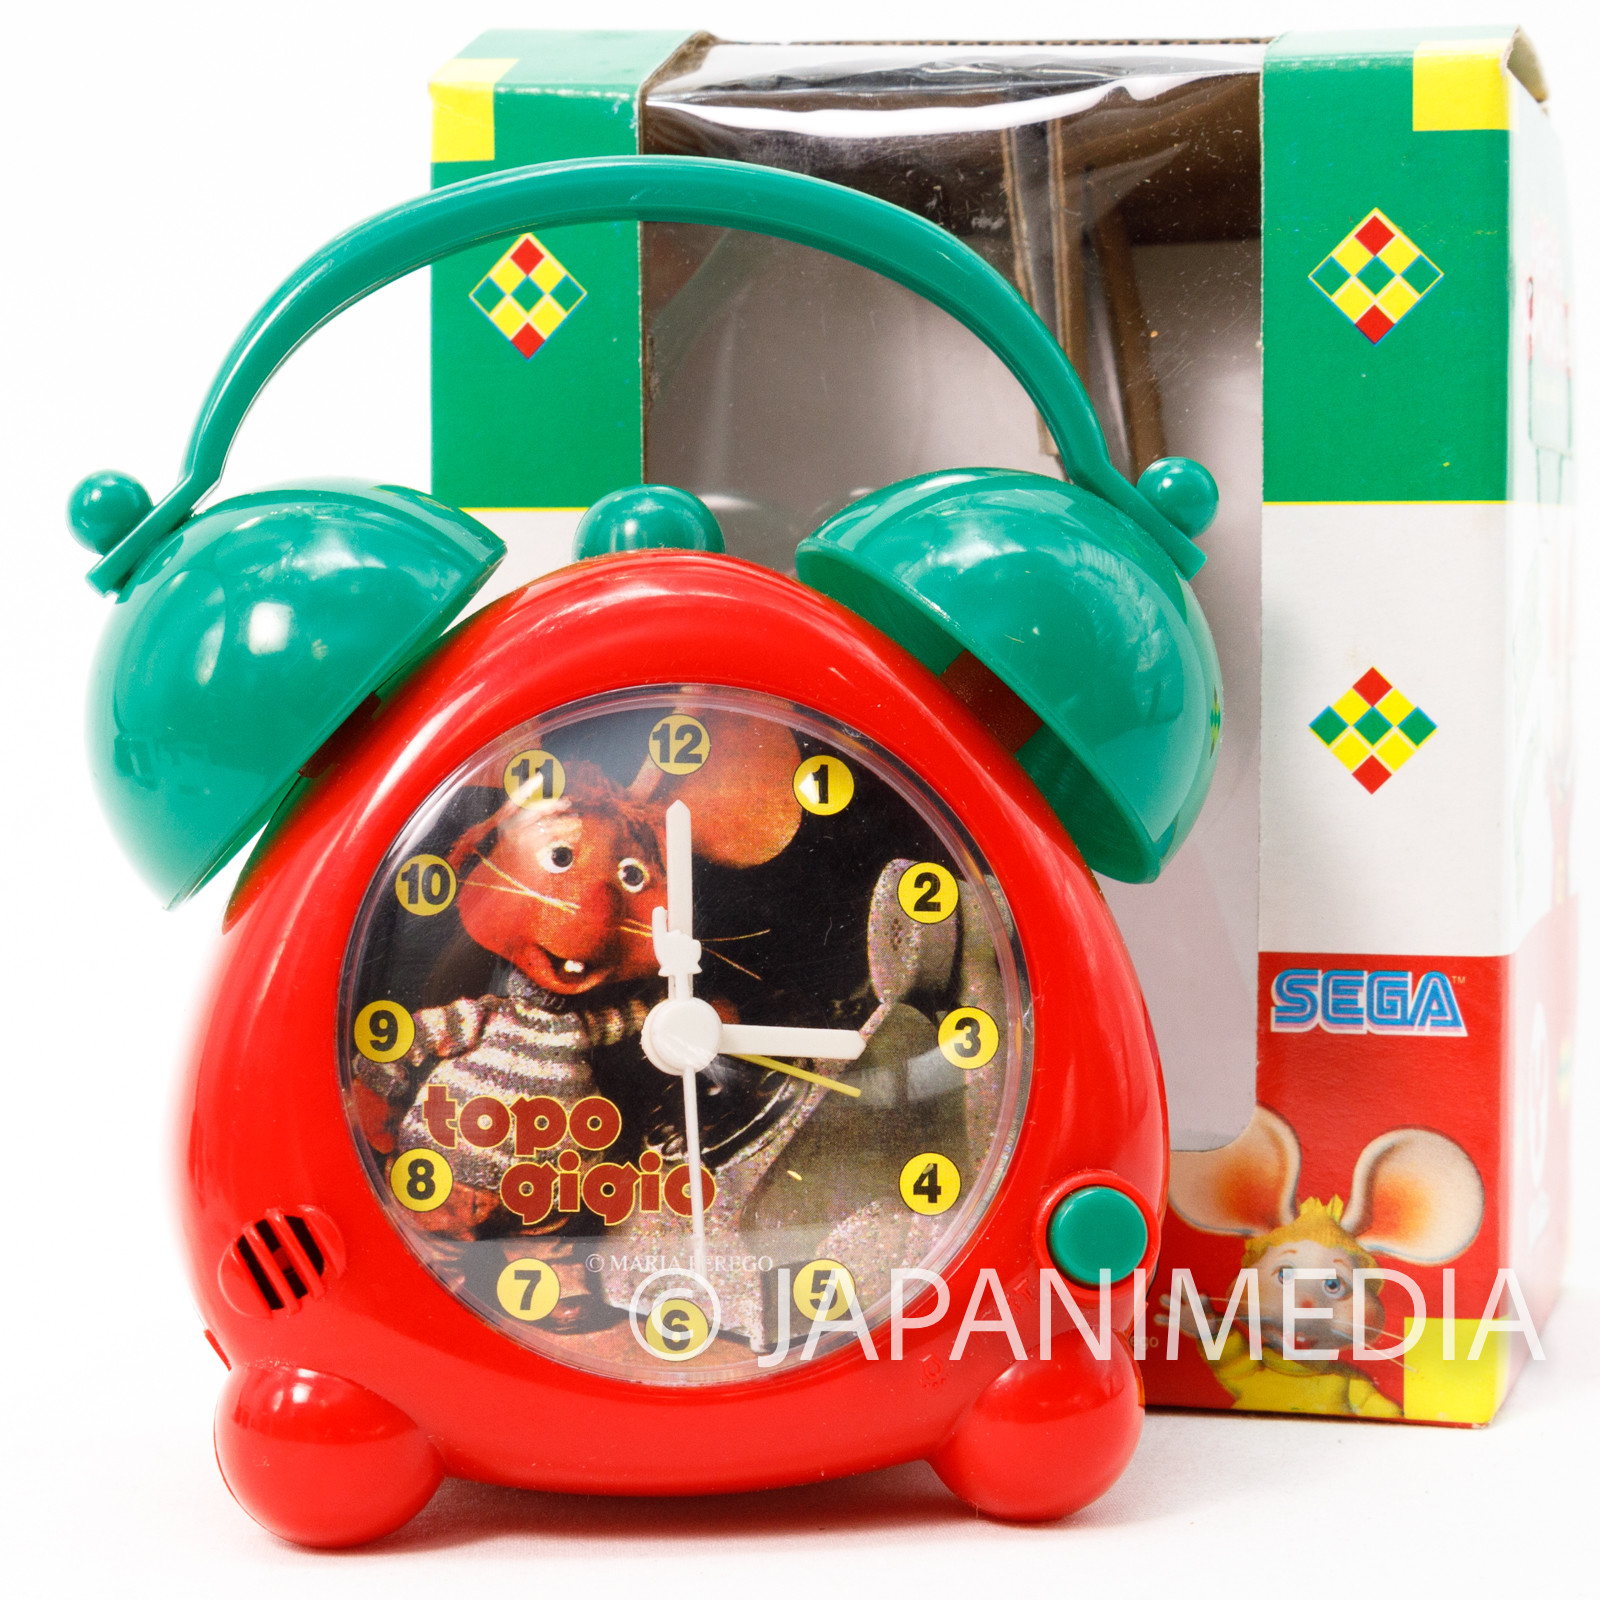 Topo Gigio Toy Alarm Clock SEGA JAPAN ANIME